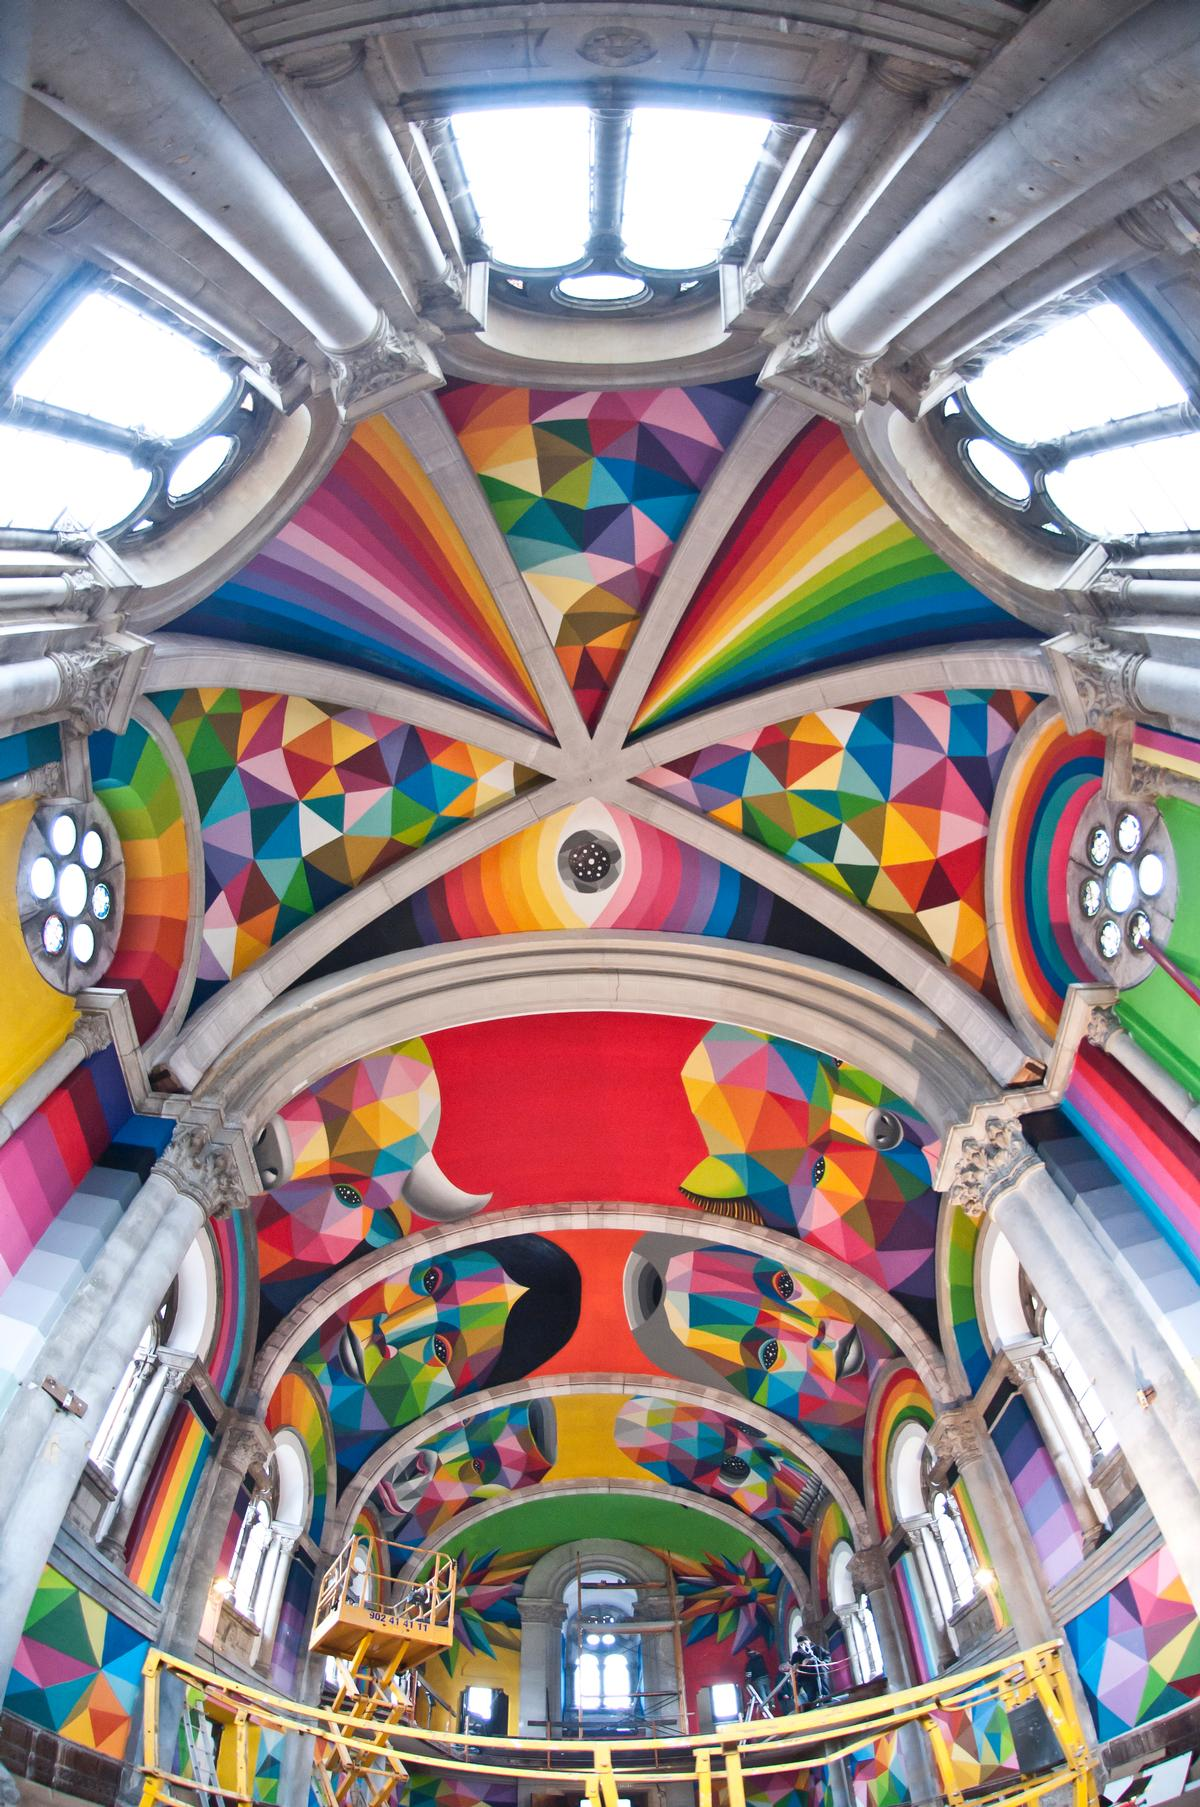 The unique paintings were created by Spanish artist Okuda San Miguel after money was raised by crowdfunding / The Church Brigade